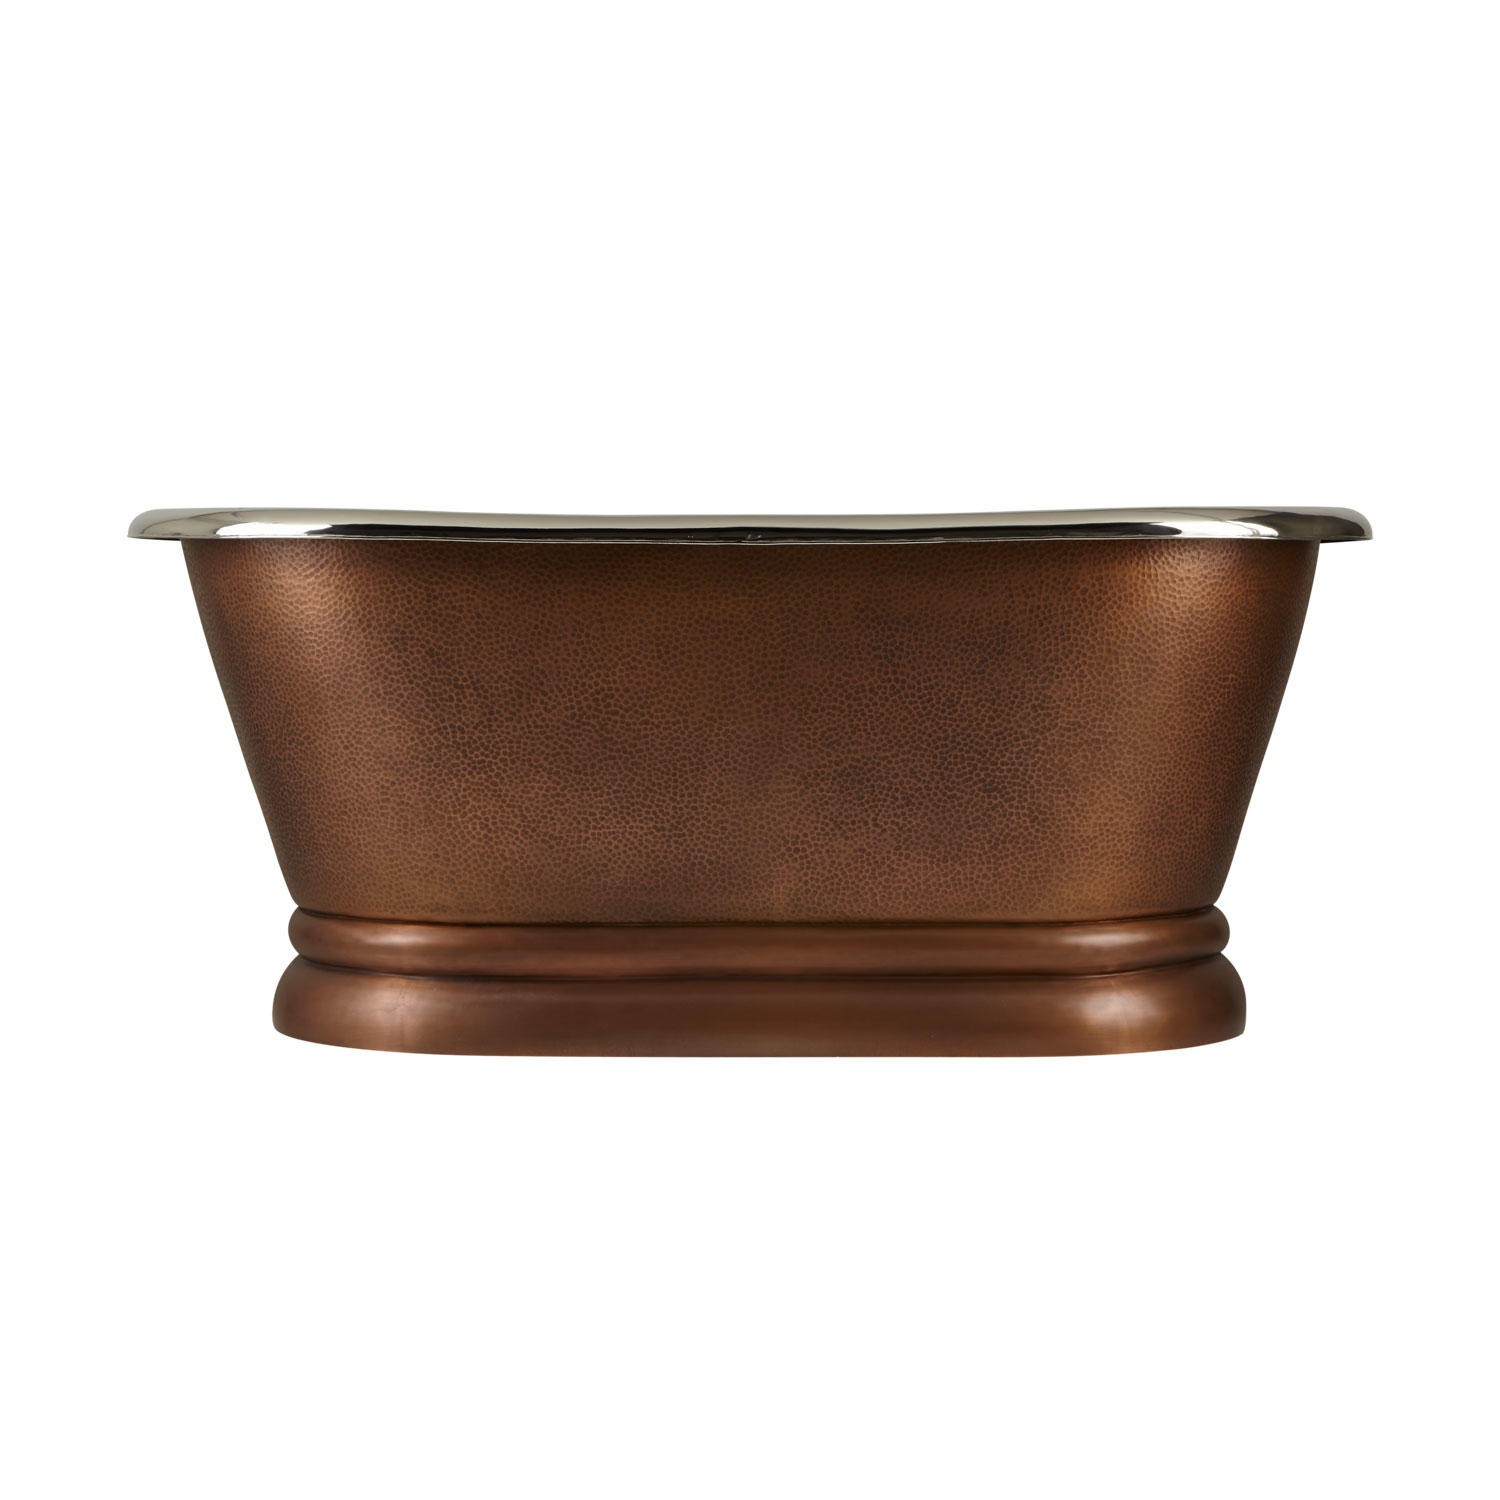 Brass Faucet Kitchen Copper Pedestal Tub Nickel Interiors Coppersmith 174 Creations